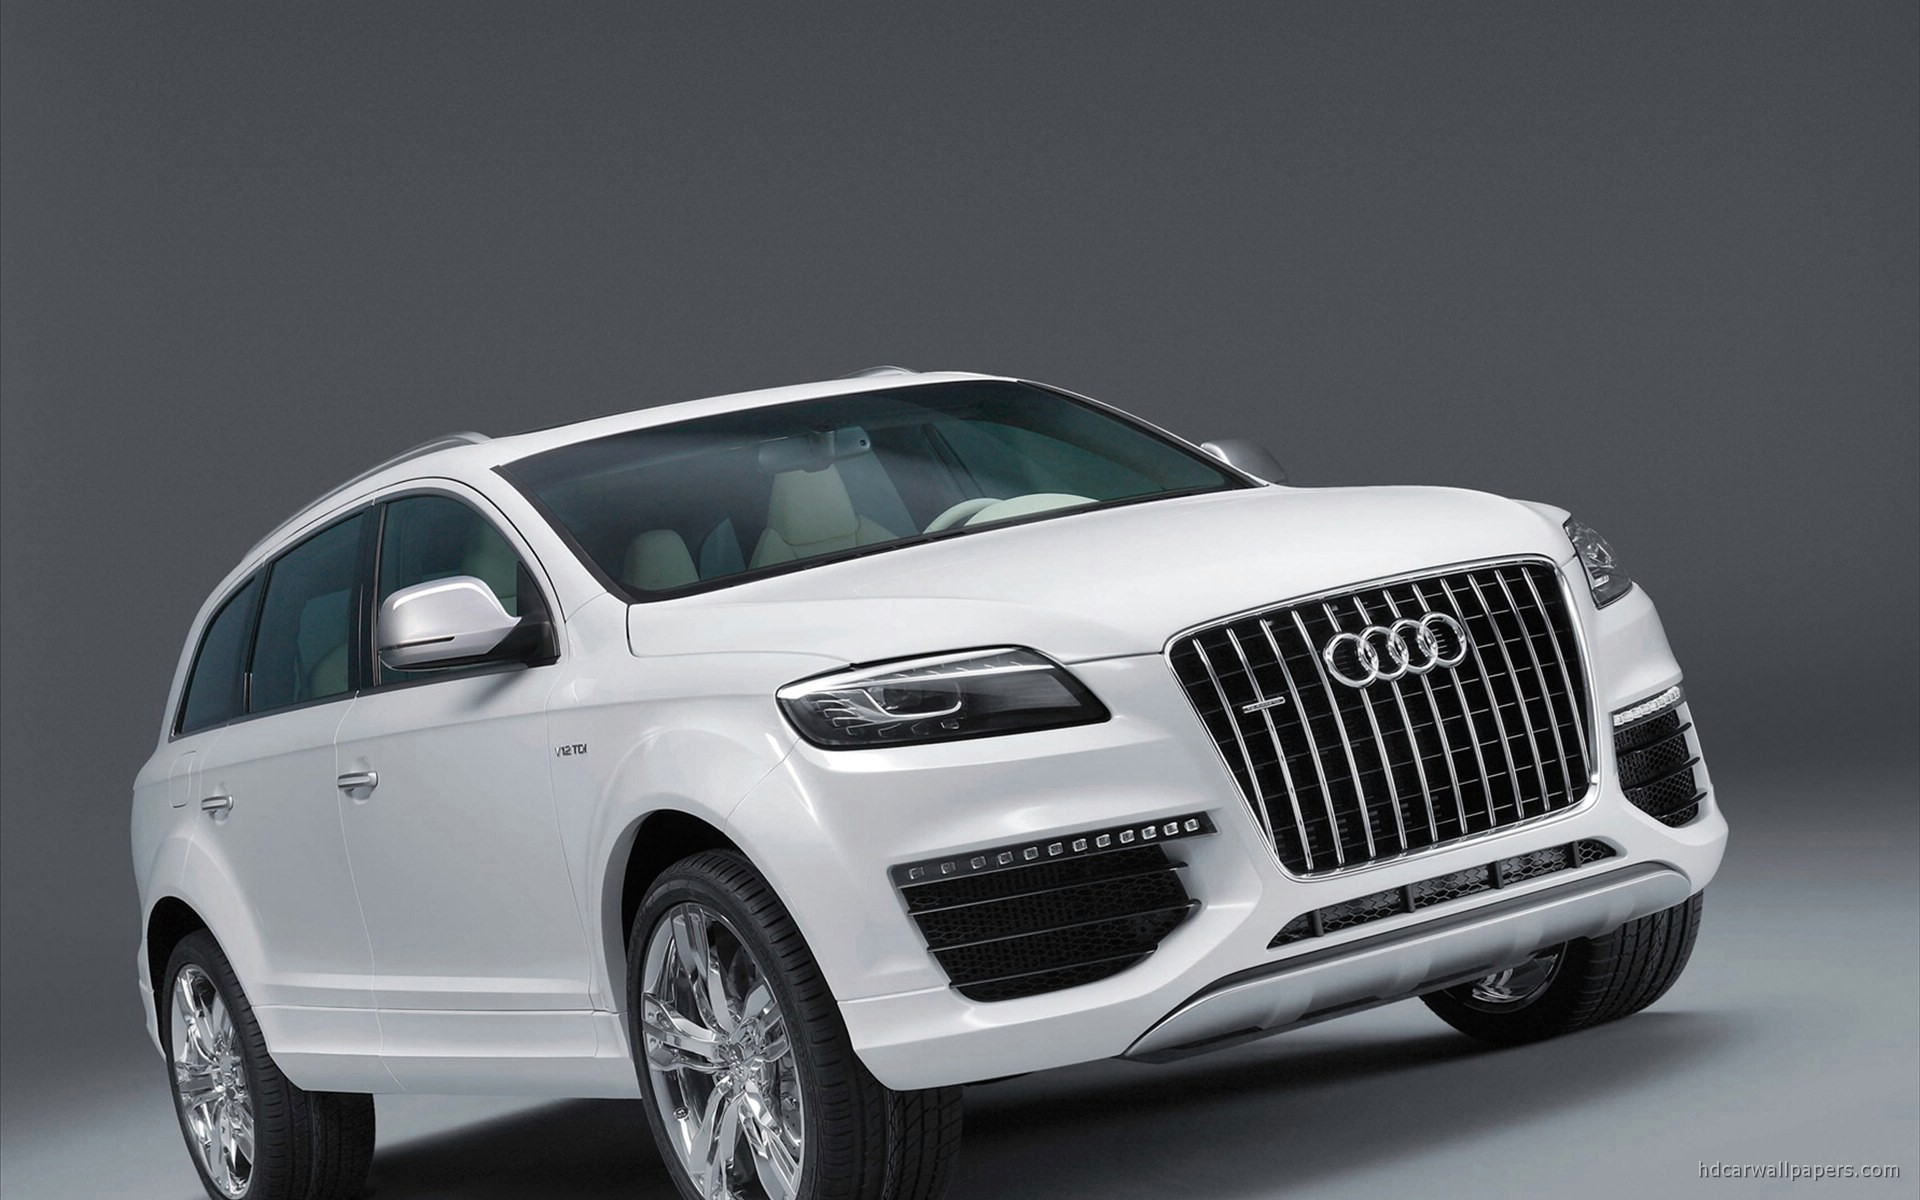 2012 Audi Q7 V12 2 Wallpaper Hd Car Wallpapers Id 1802